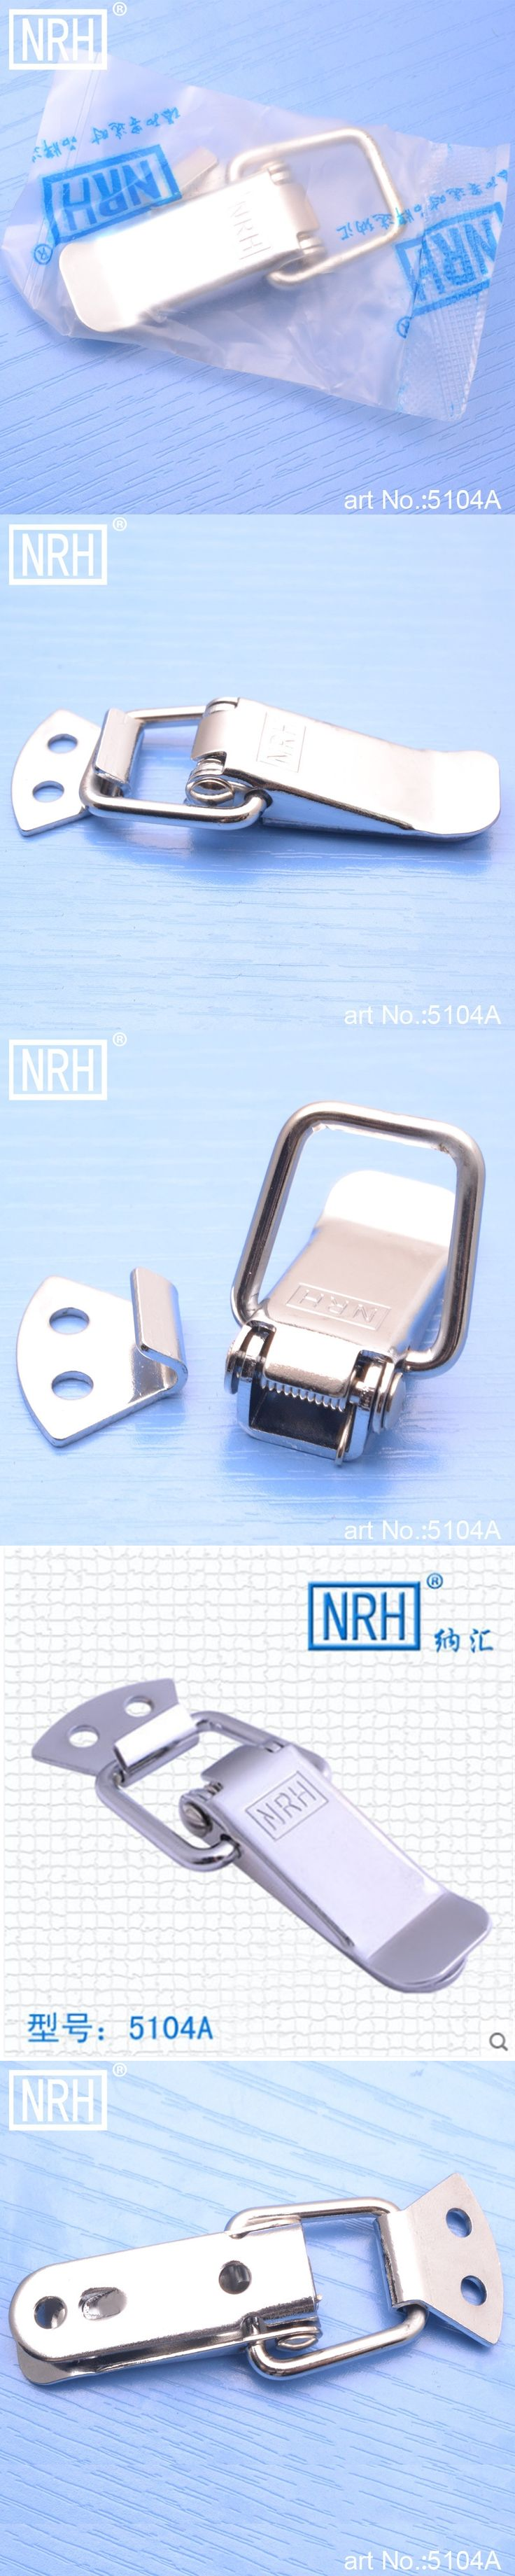 NRH 5104A cold-rolled steel light-duty draw latch built in spring Hasp for Medical equipment box factory direct sales wholesale